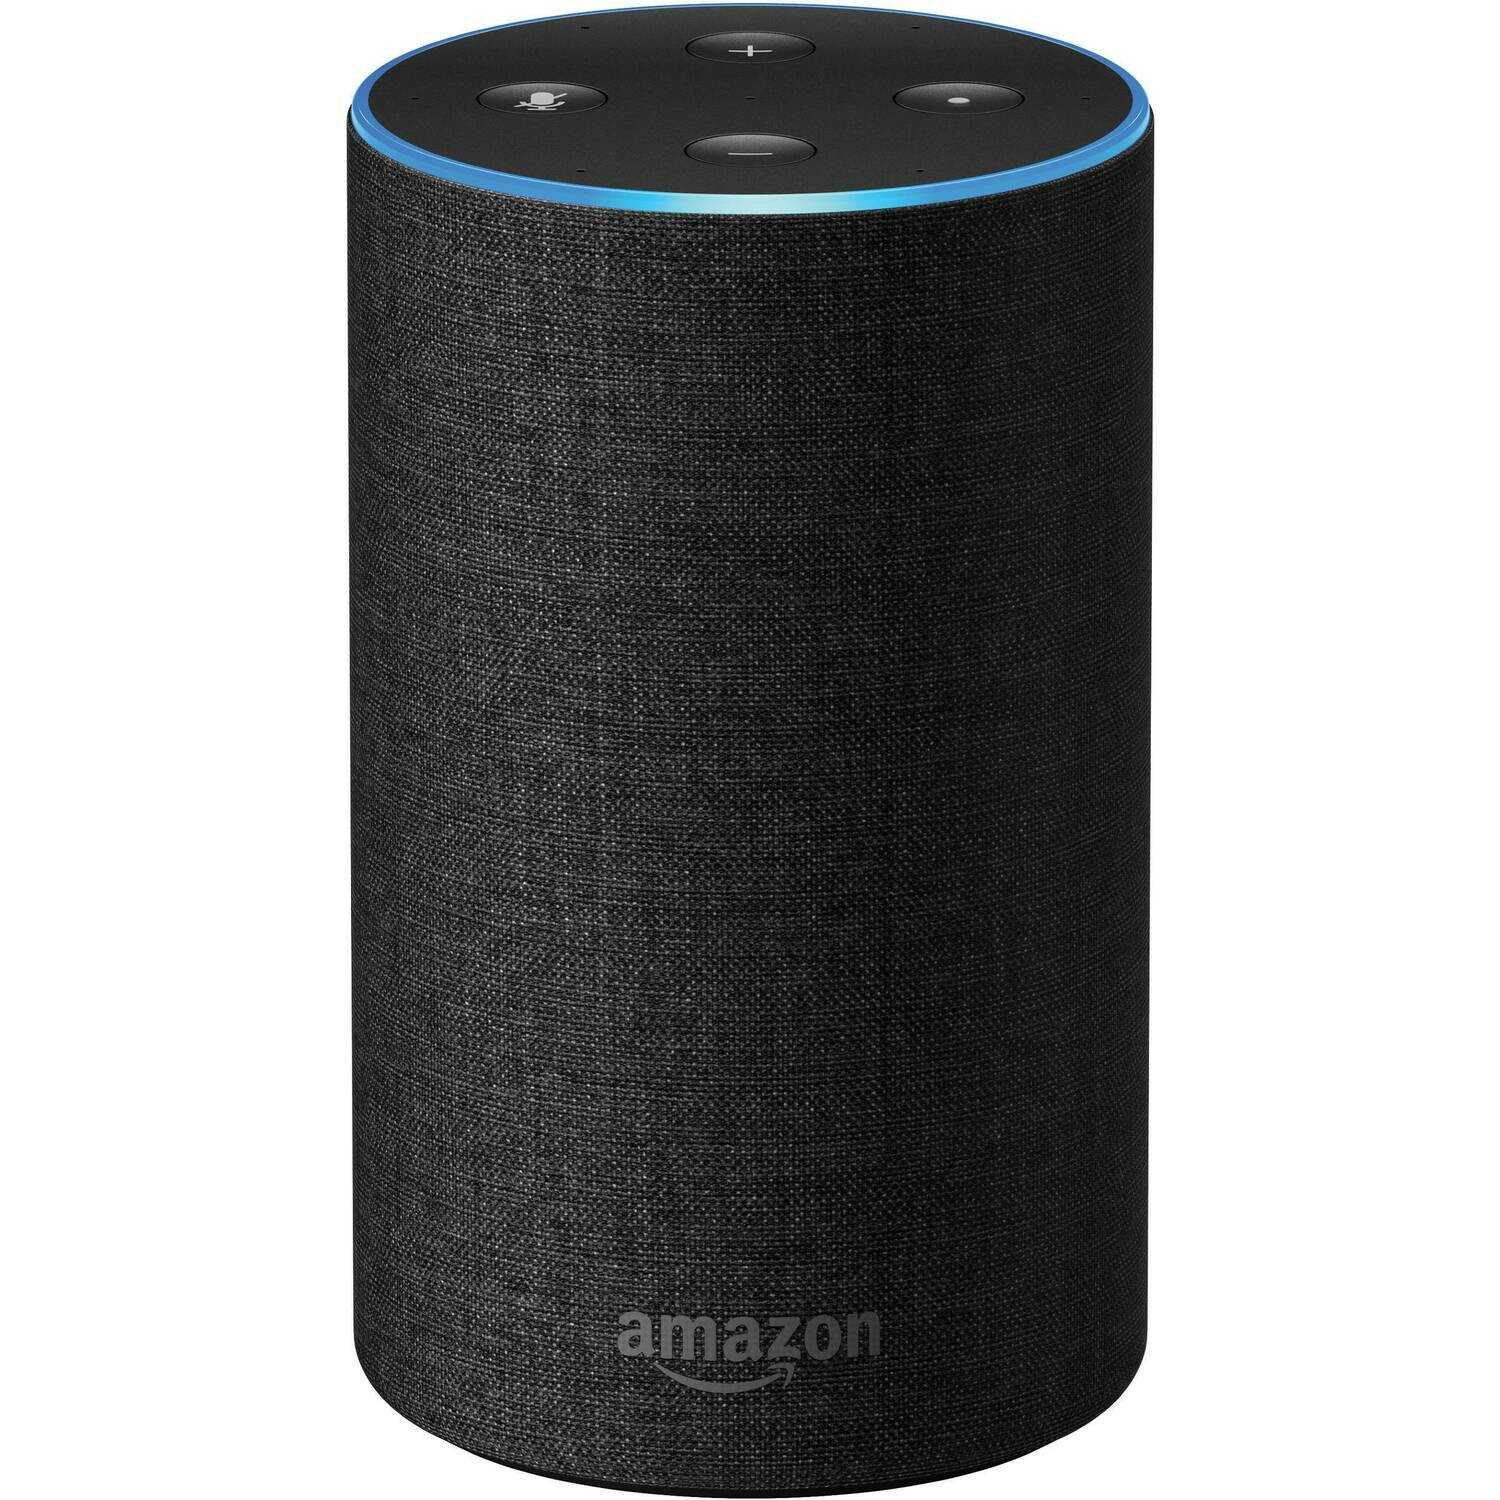 Amazon Echo 2nd Gen, Powered by Dolby, Black